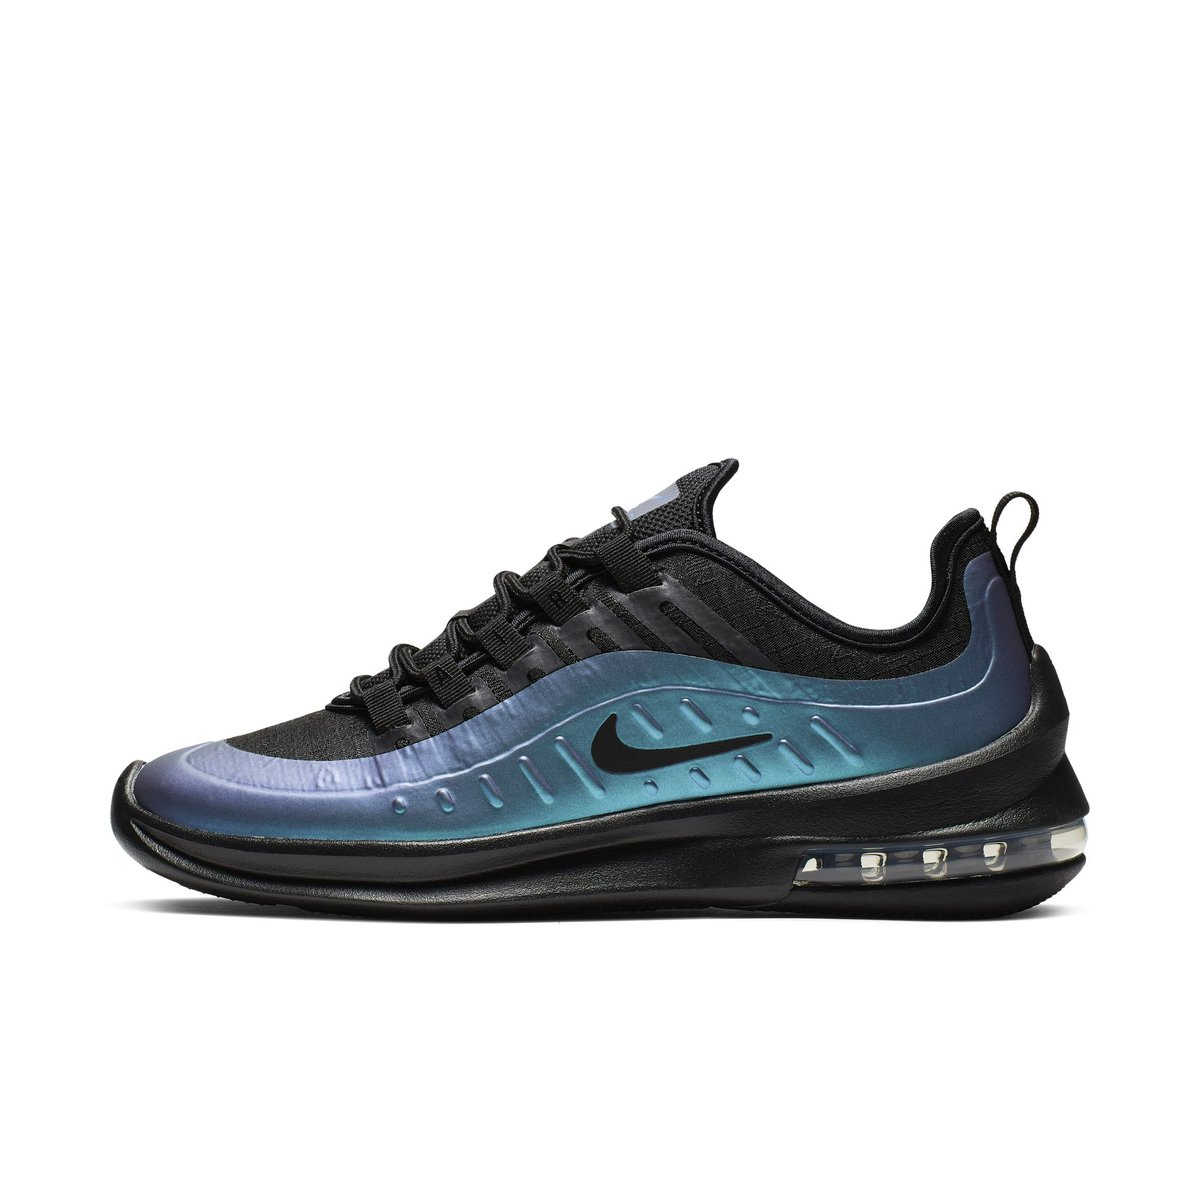 nike air max axis premium black racer blue